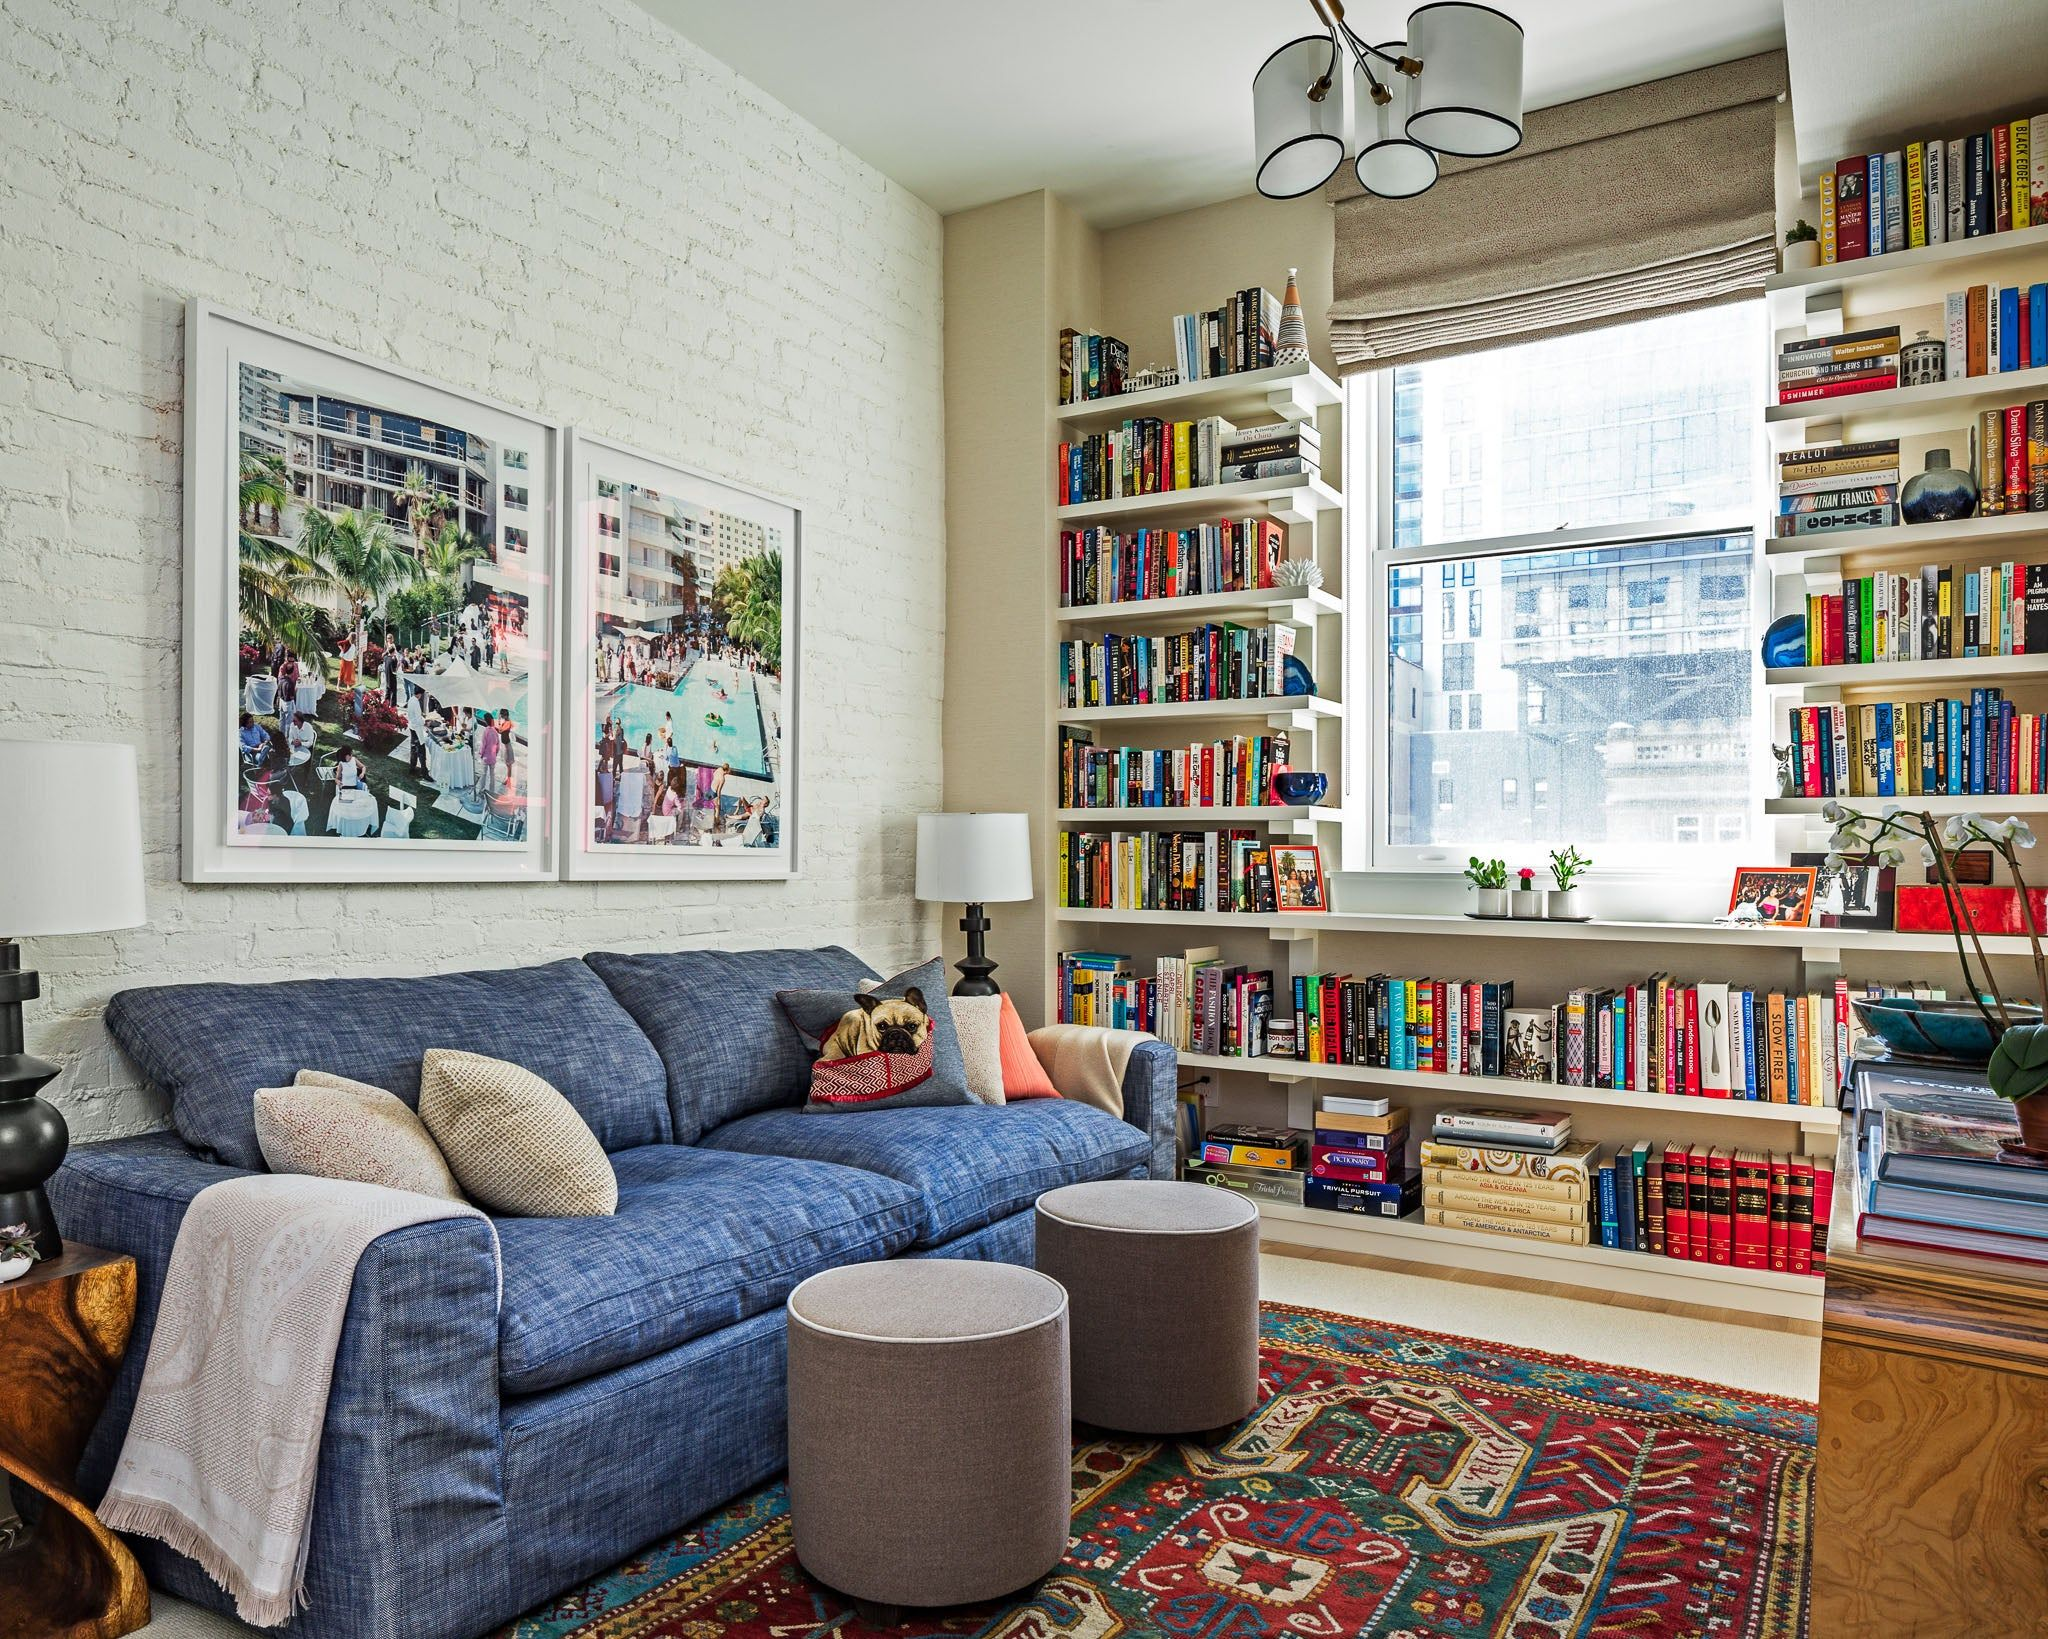 Chelsea Apartment By Louisa G Roeder Llc In New York Ny The Apartment Has Great Bones High Ceilings And Big Windows That Flood T In 2020 Interior Home Home Decor